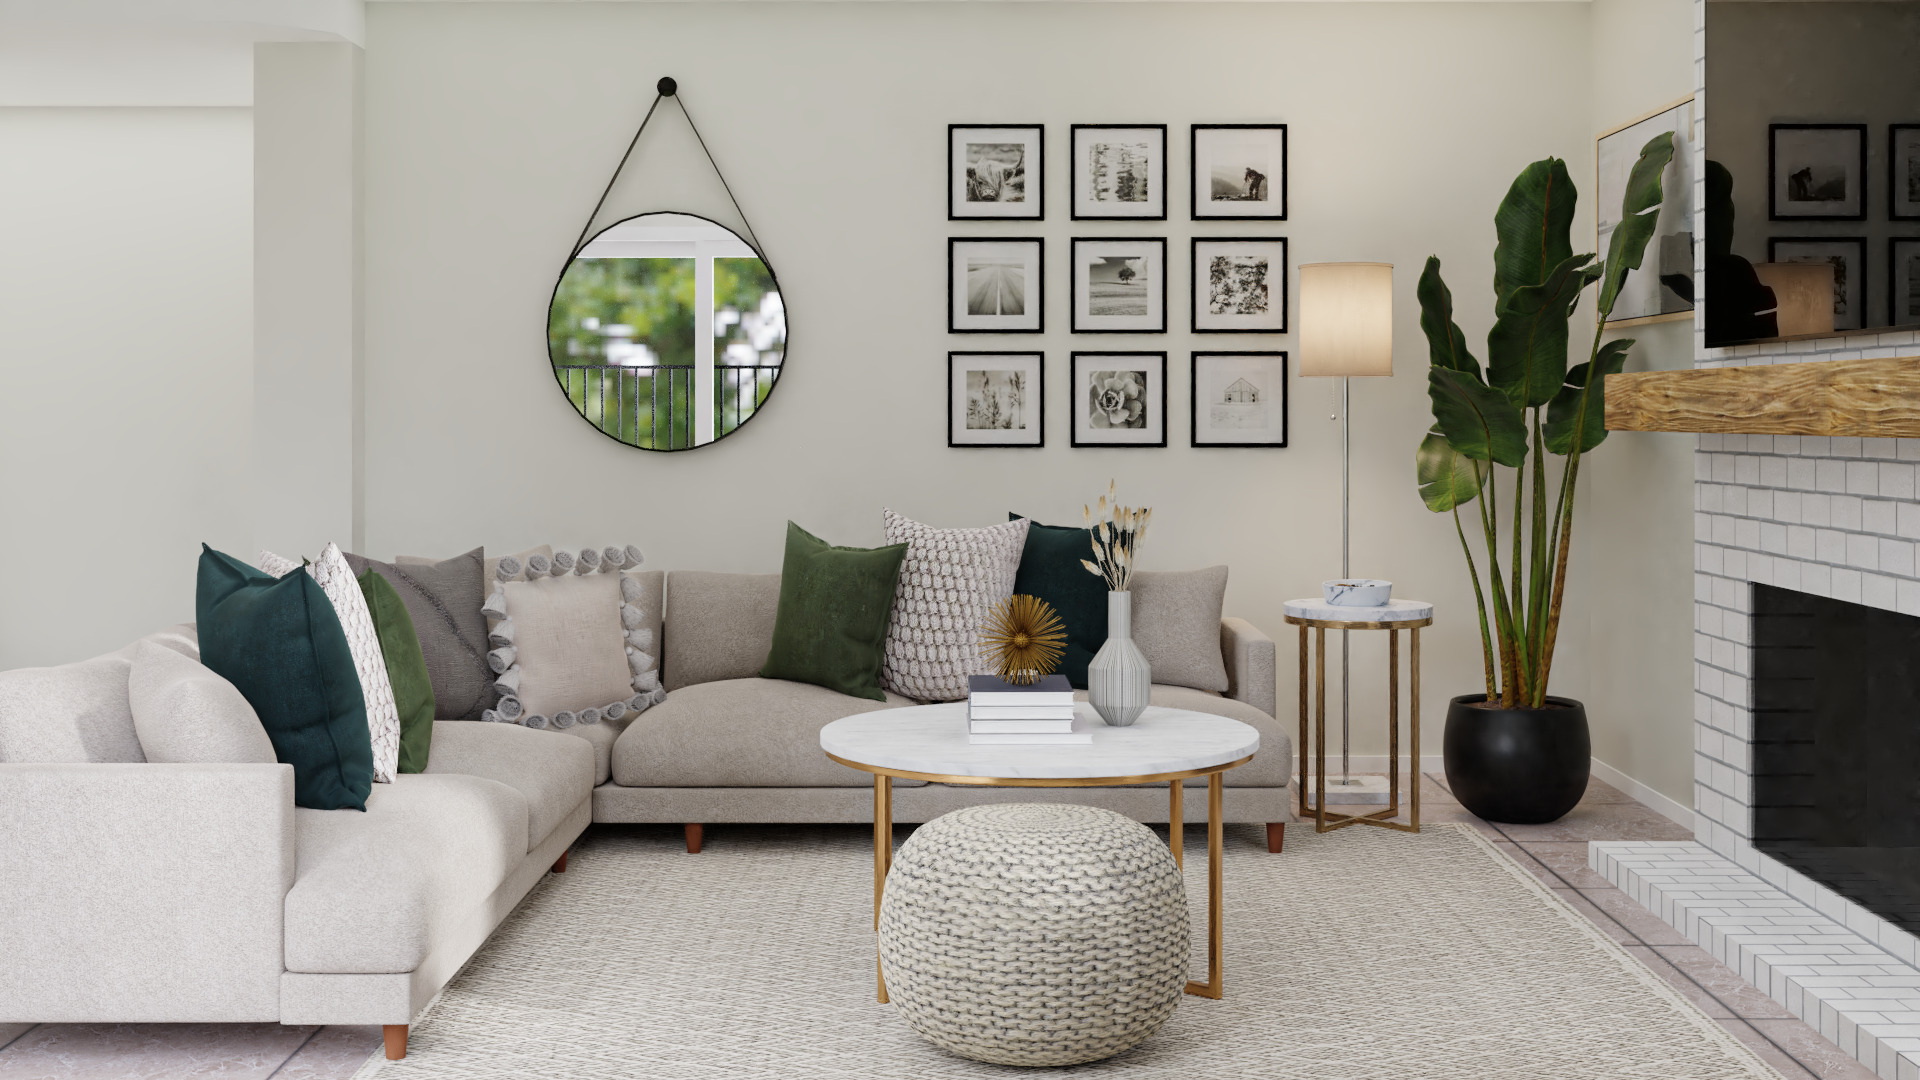 20 Simple Living Room Decorating Ideas brimming with style